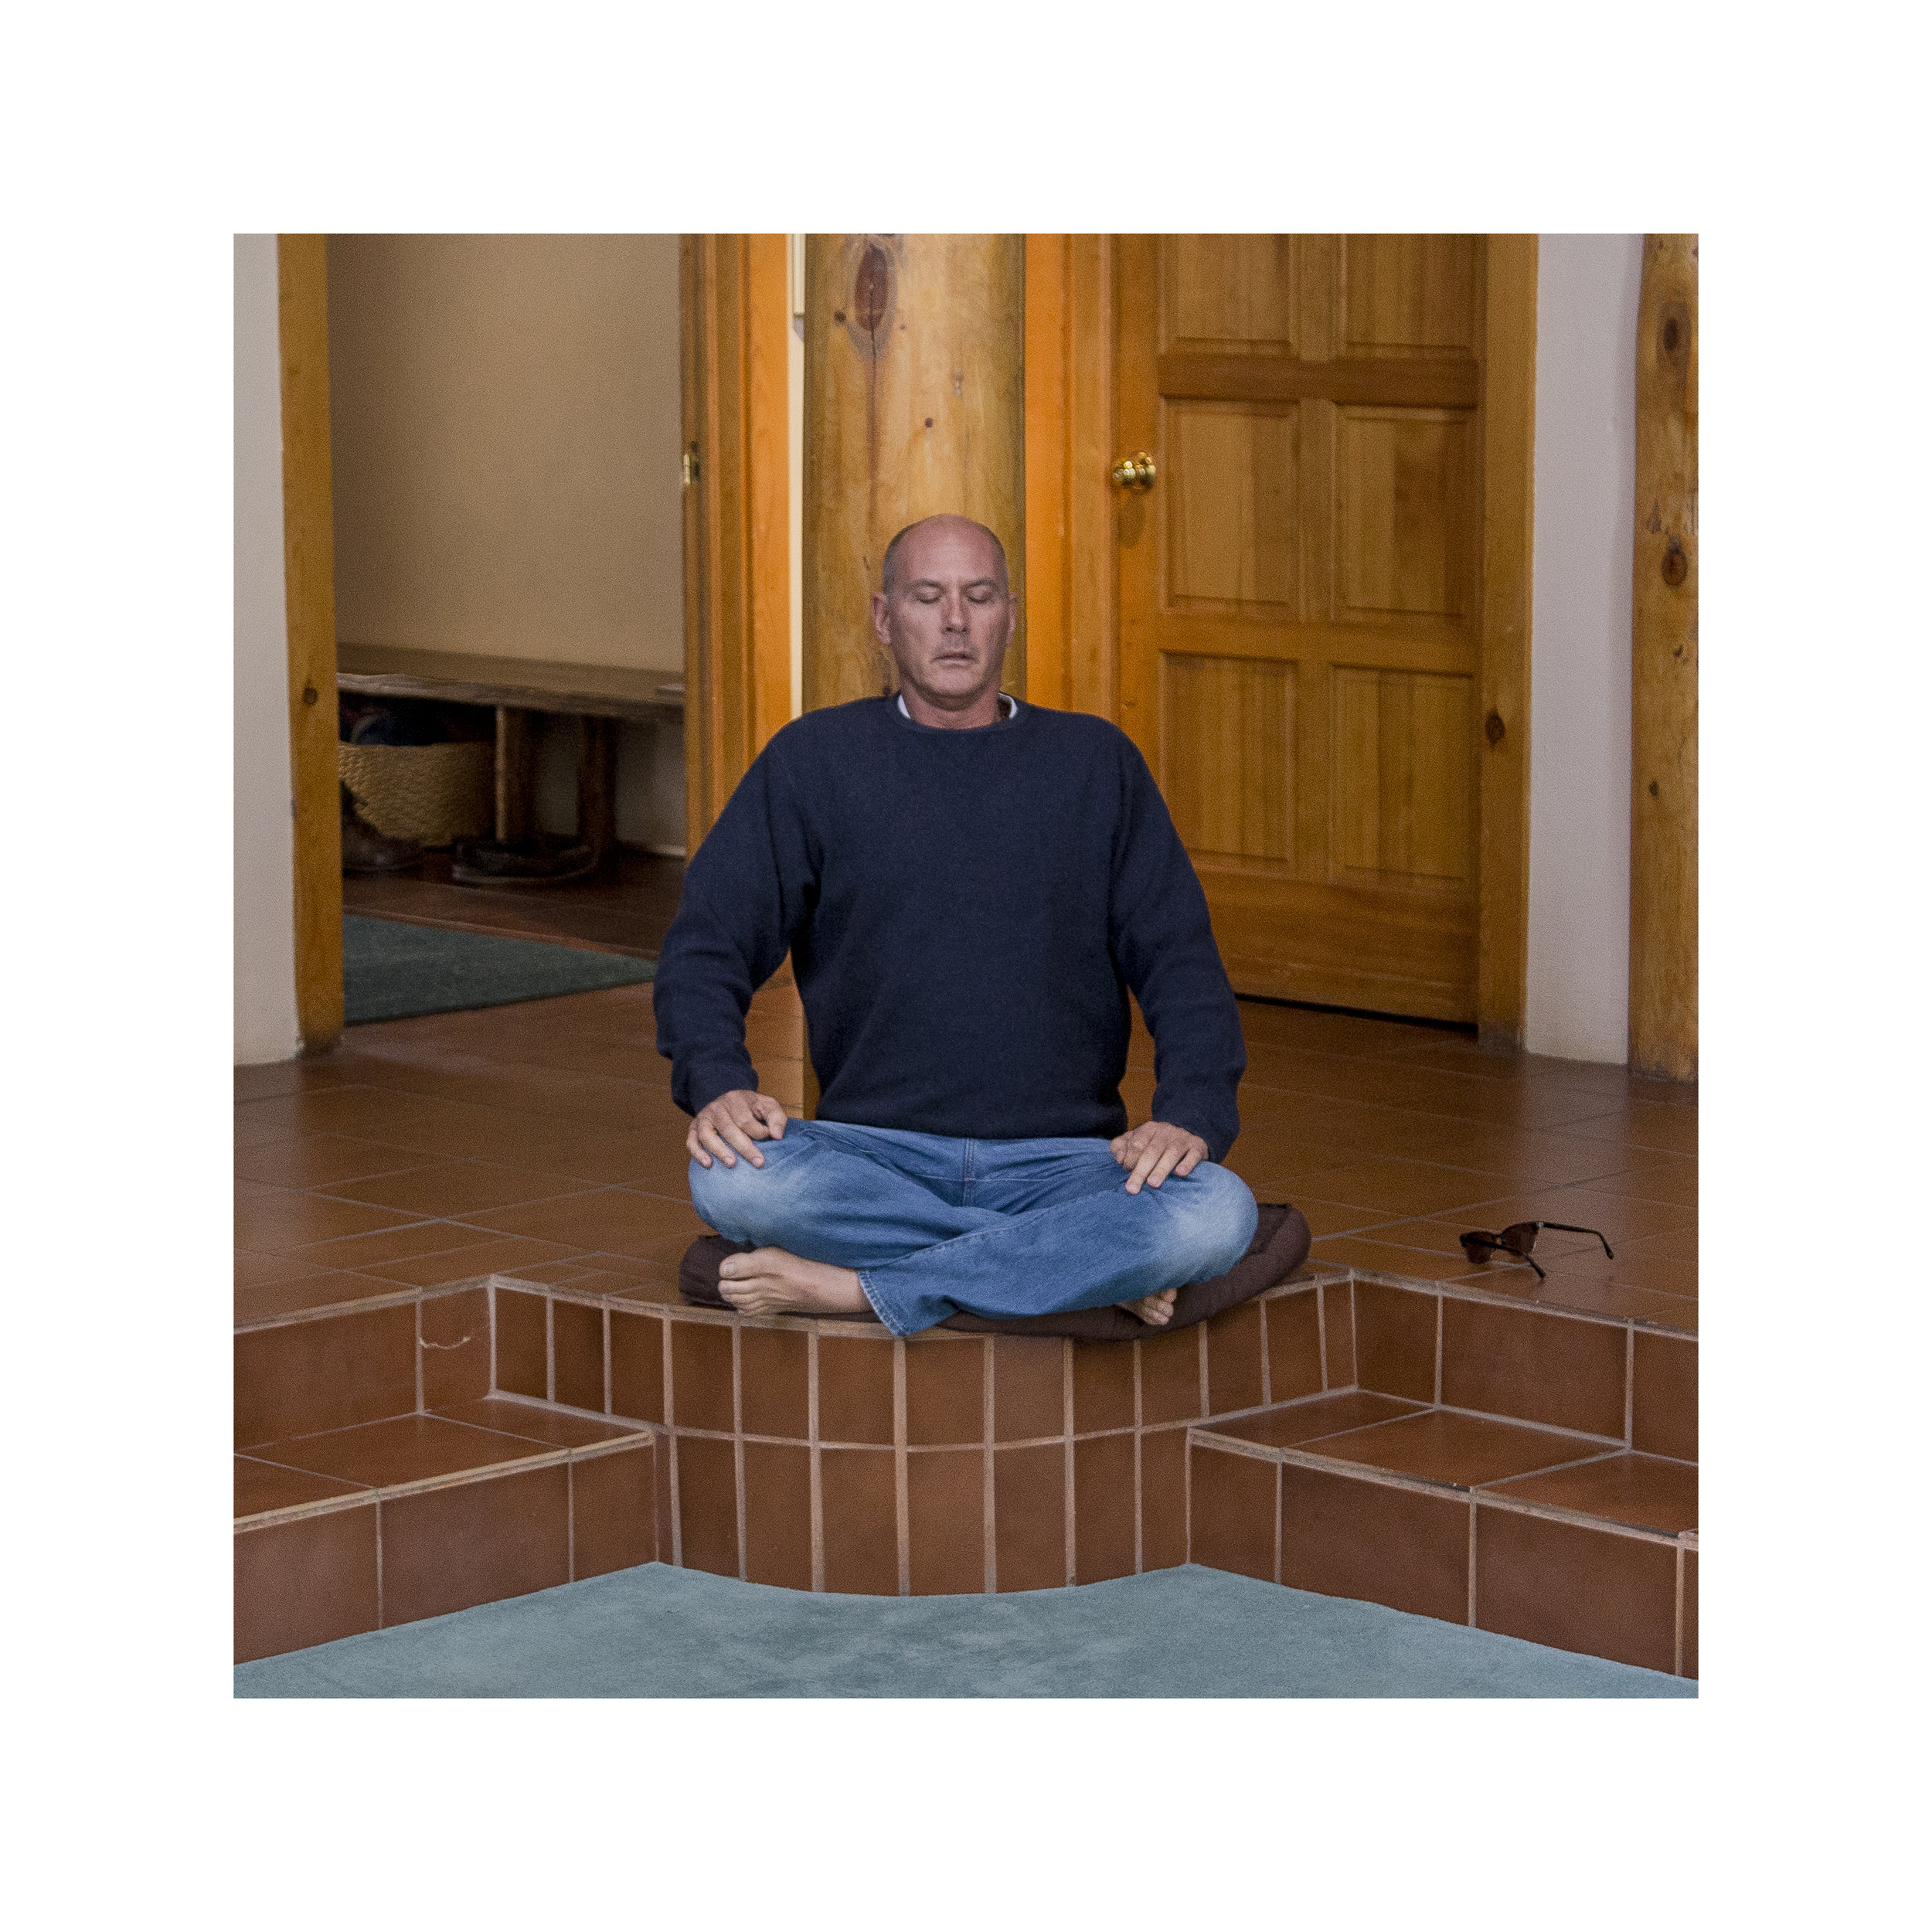 Scott, a real estate agent from Texas who has a second home in Crestone,meditates in the Carmelite monastery.